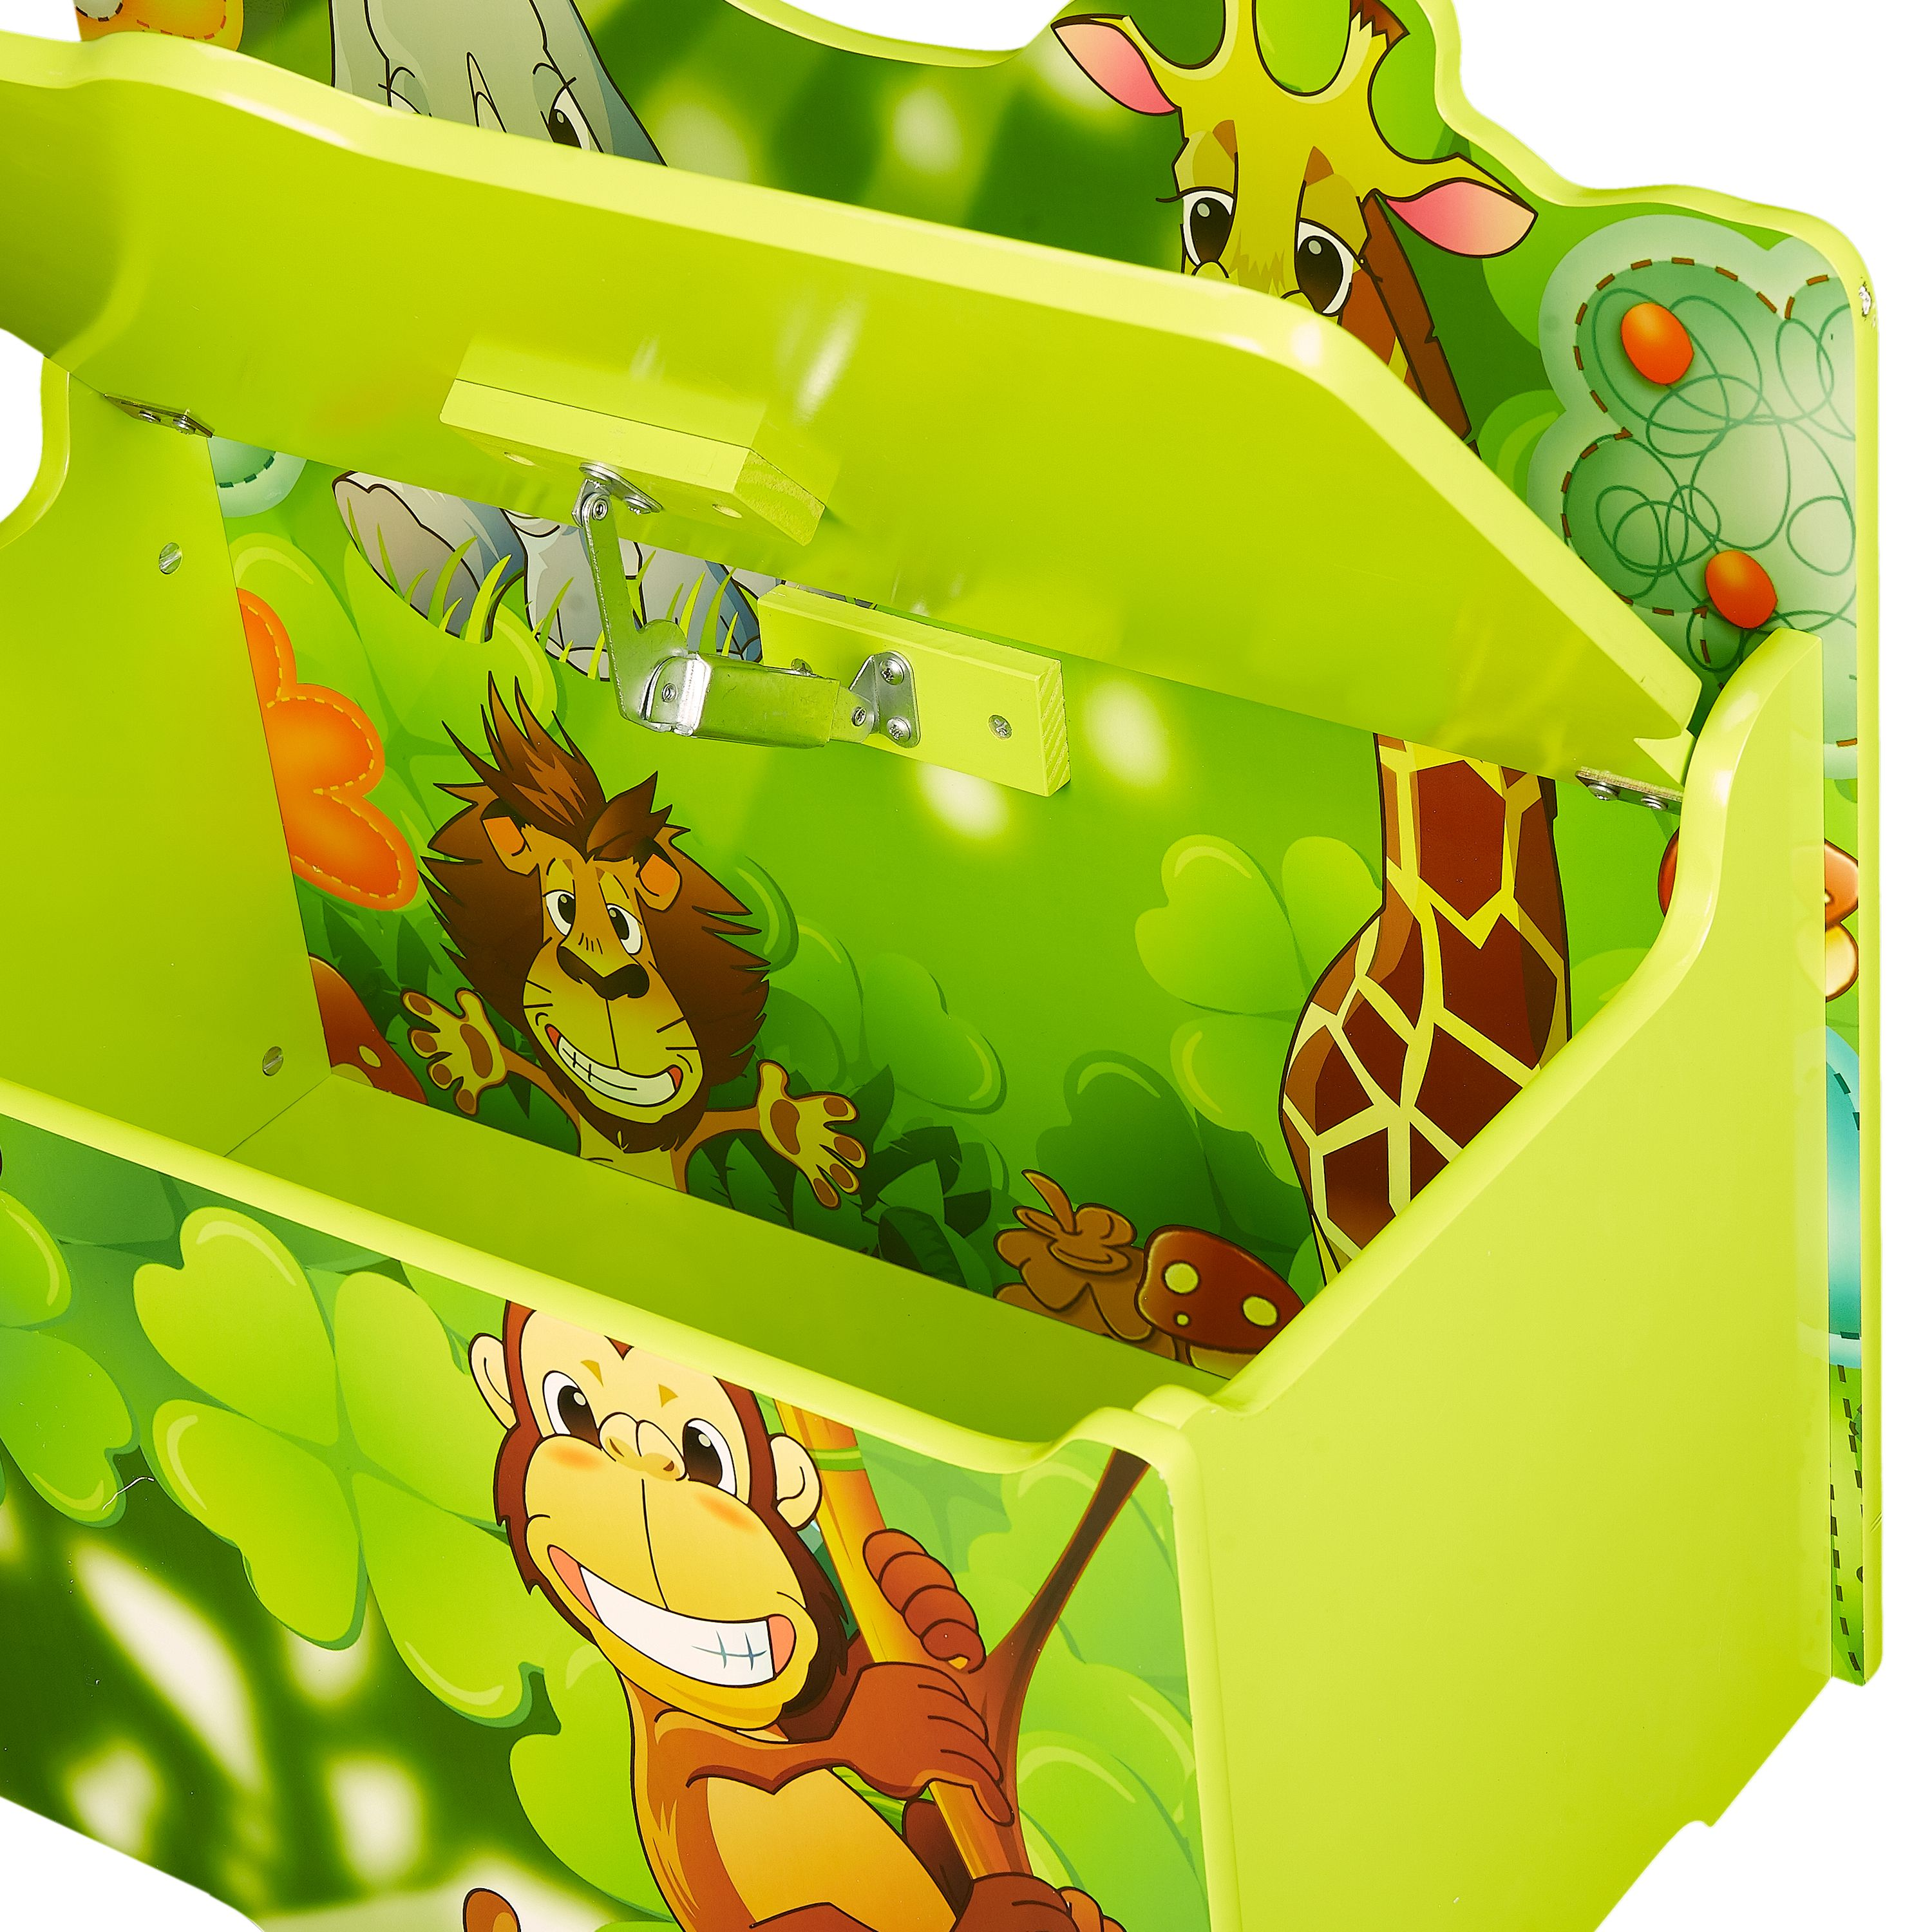 senda kid's jungle wooden storage toy box with lid - walmart